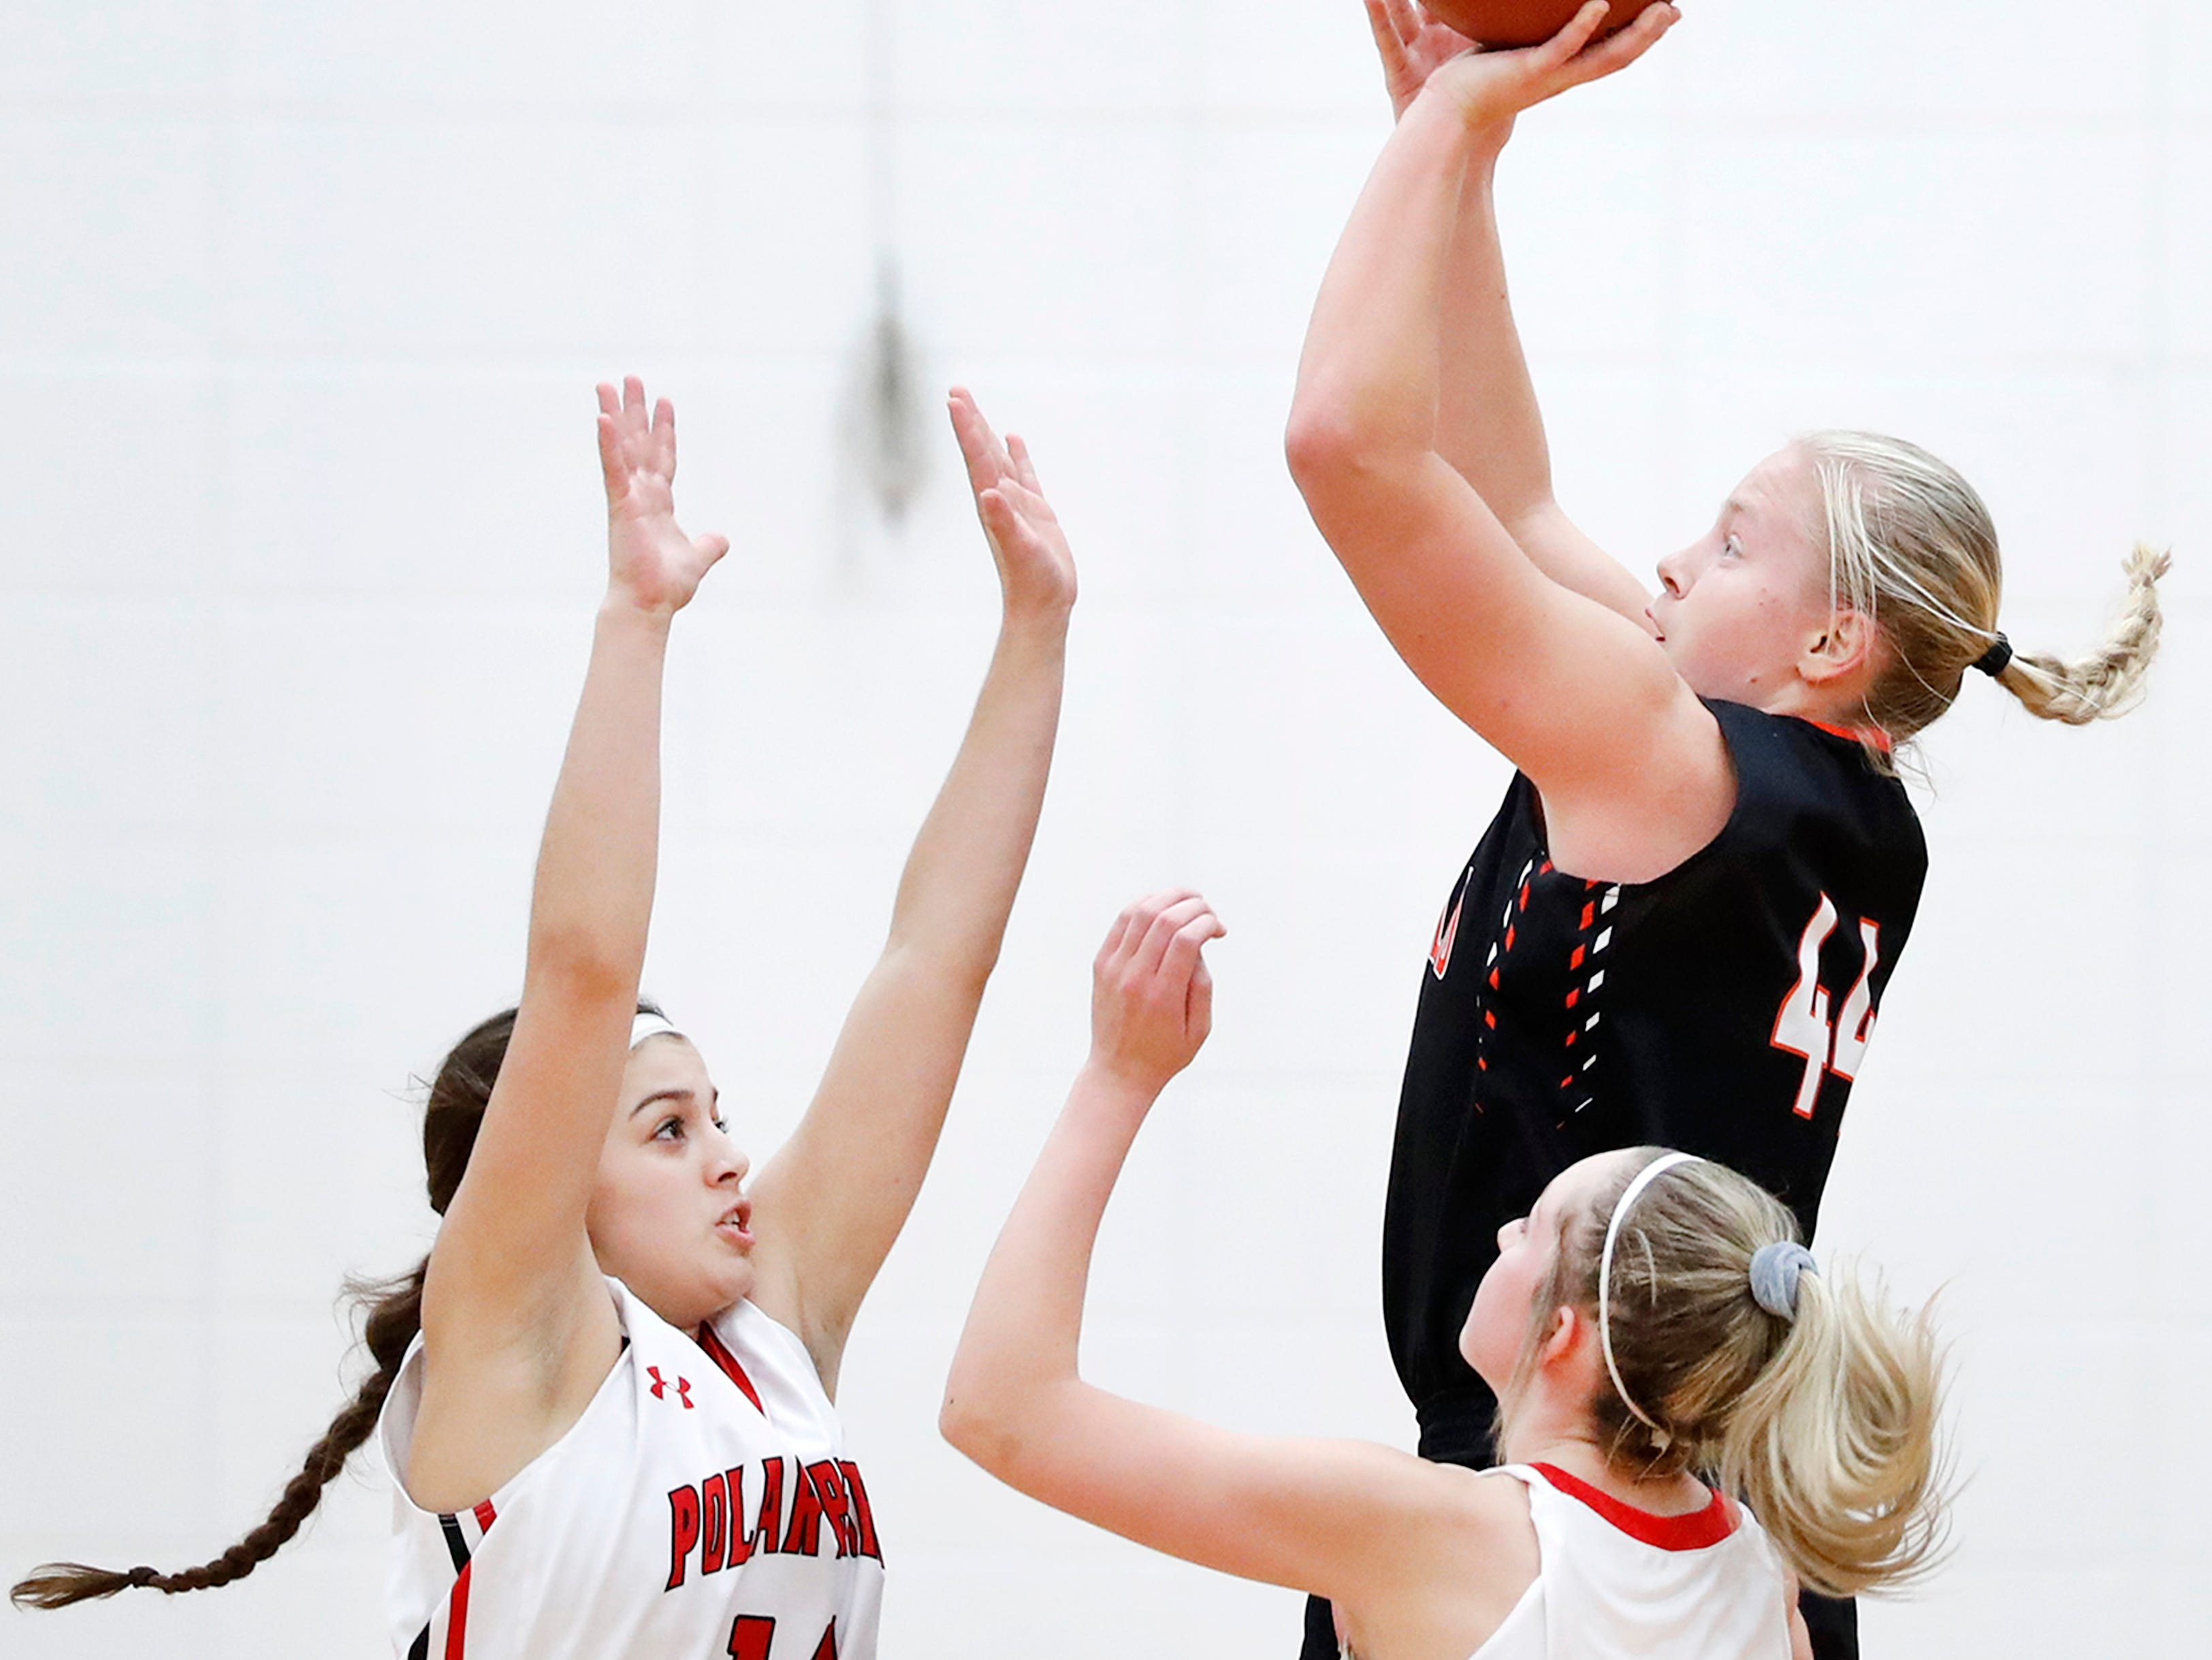 Hortonville High School's Tatum Hammen and Lexi Day try to cover Marshfield High School's Jenna Jakobi as she takes a shot Thursday, Nov. 15, 2018, in Hortonville, Wis.